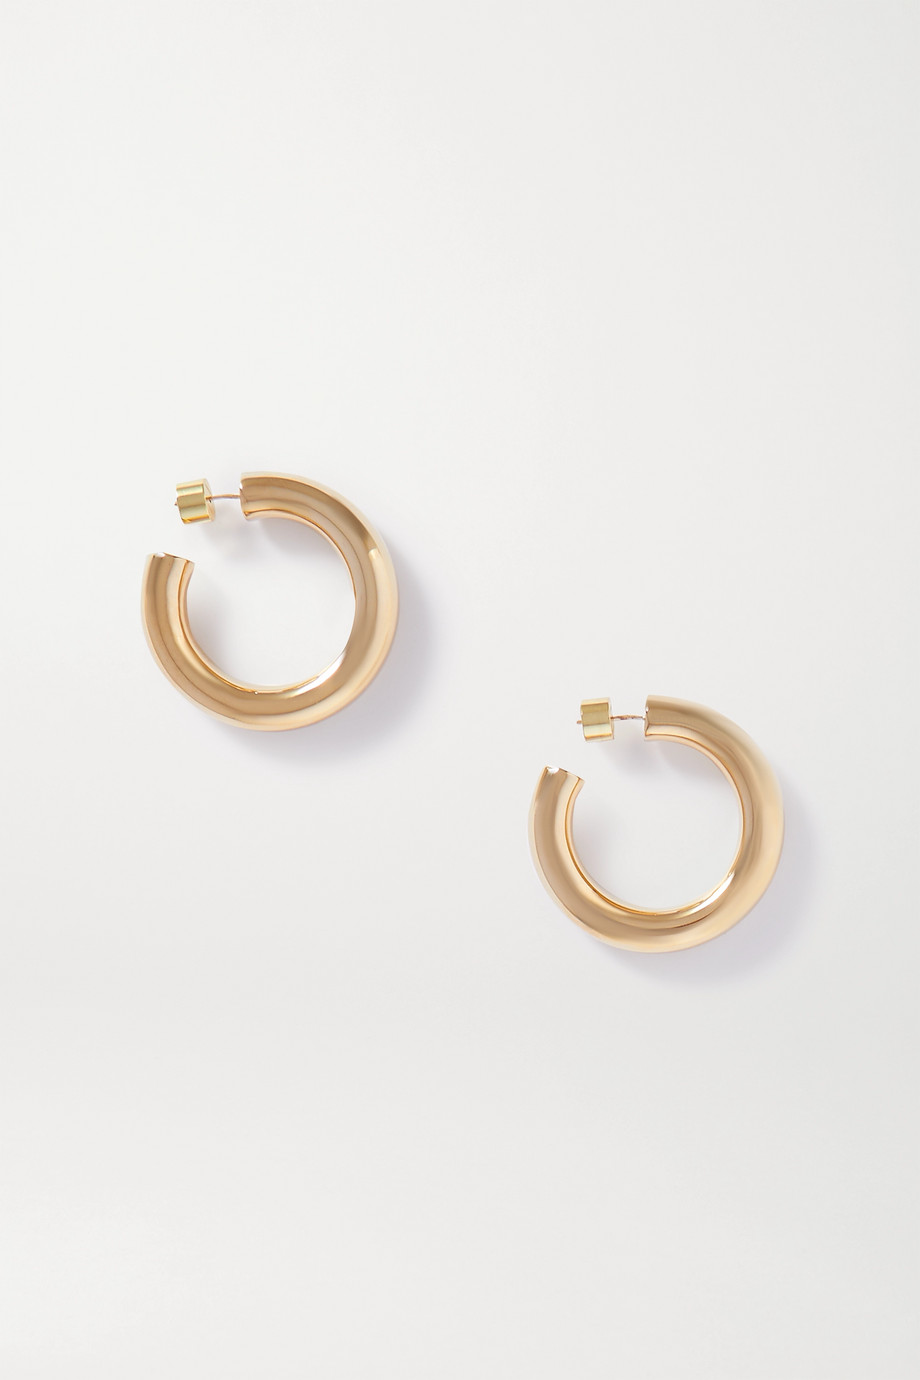 Jennifer Fisher Mini Jamma gold-plated hoop earrings